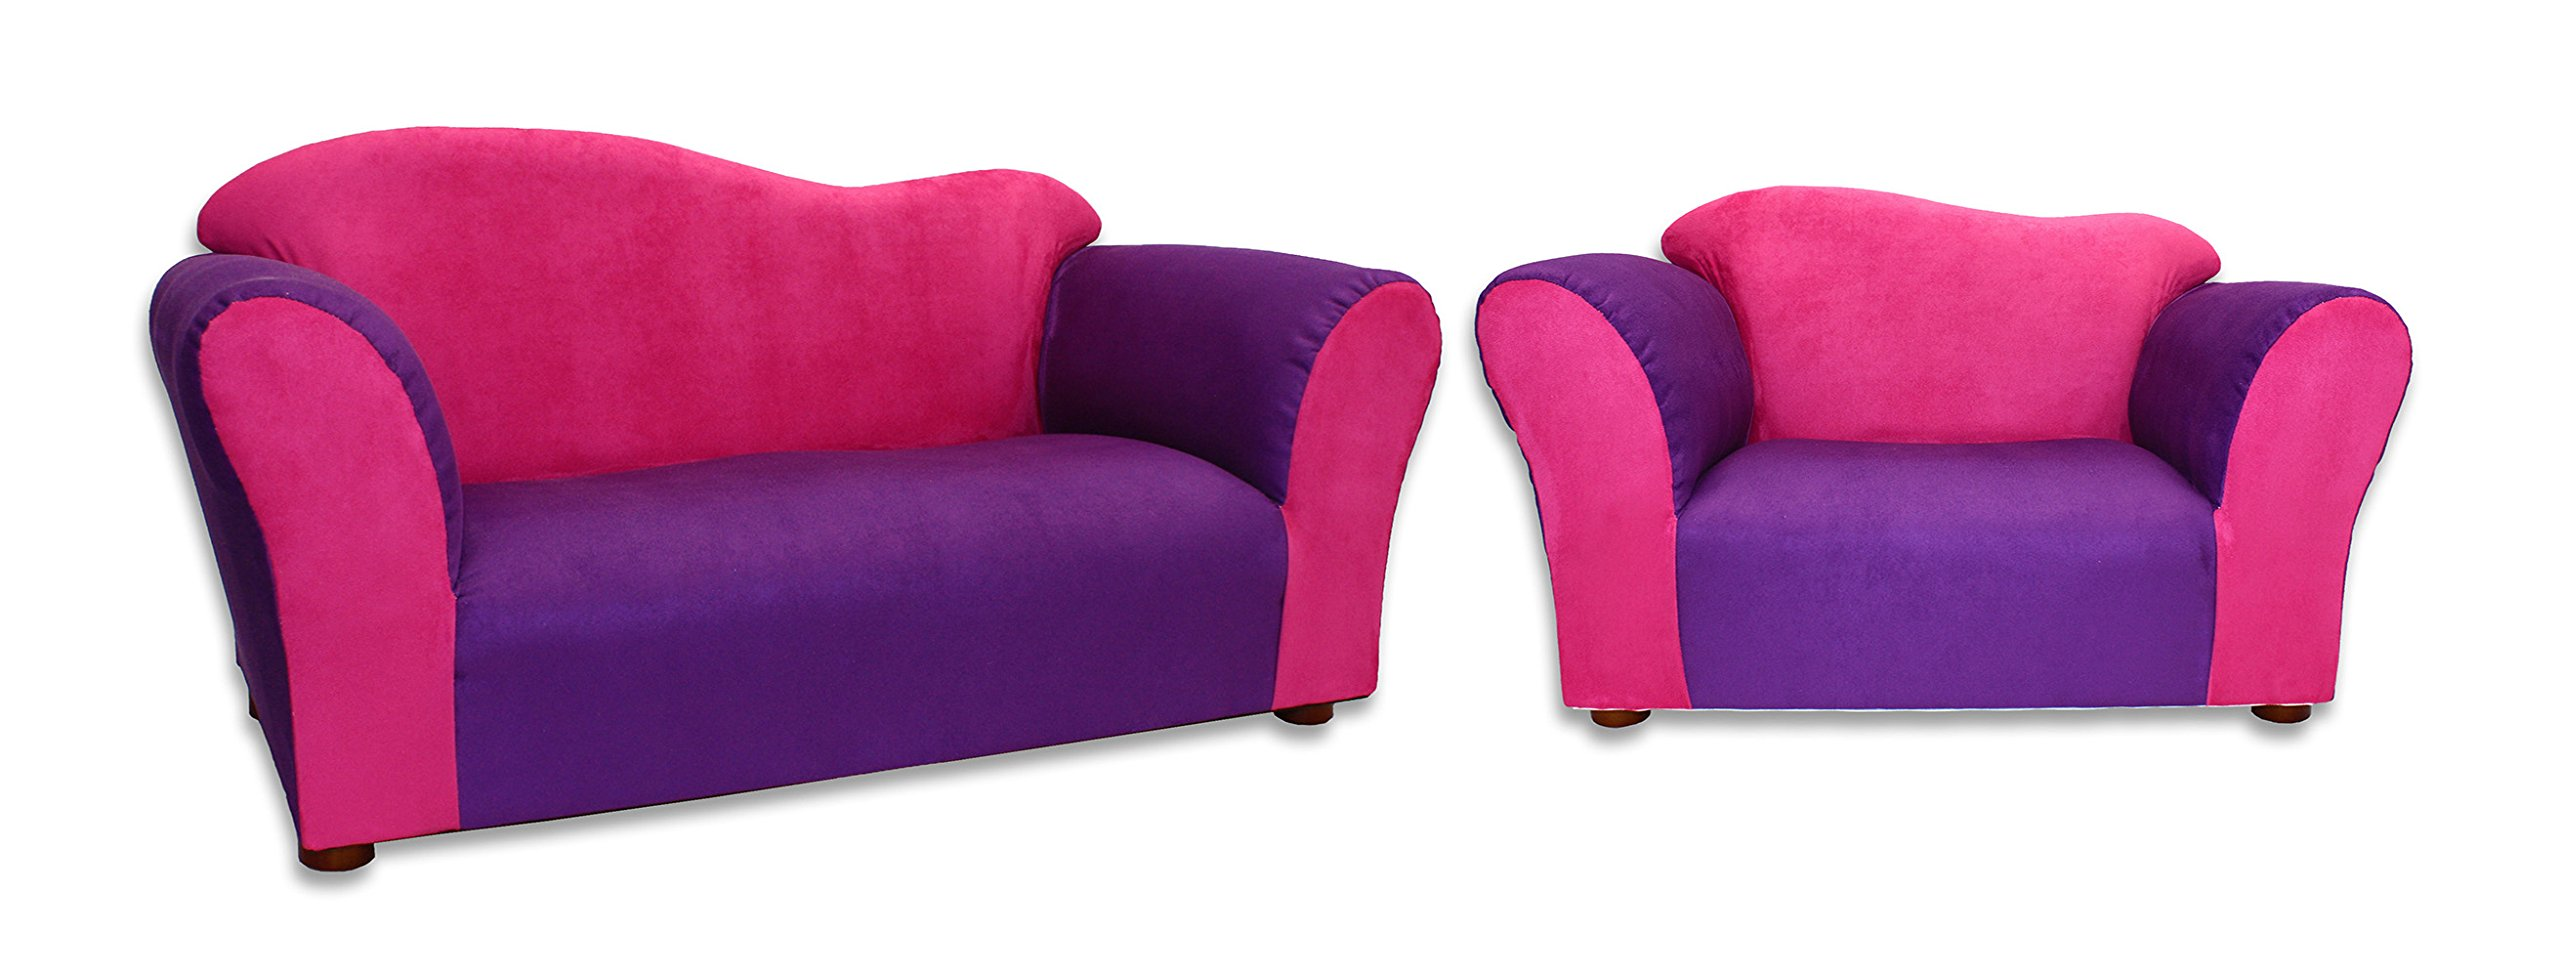 KEET Sofa and Chair Wave Kid's Set, Pink/Purple